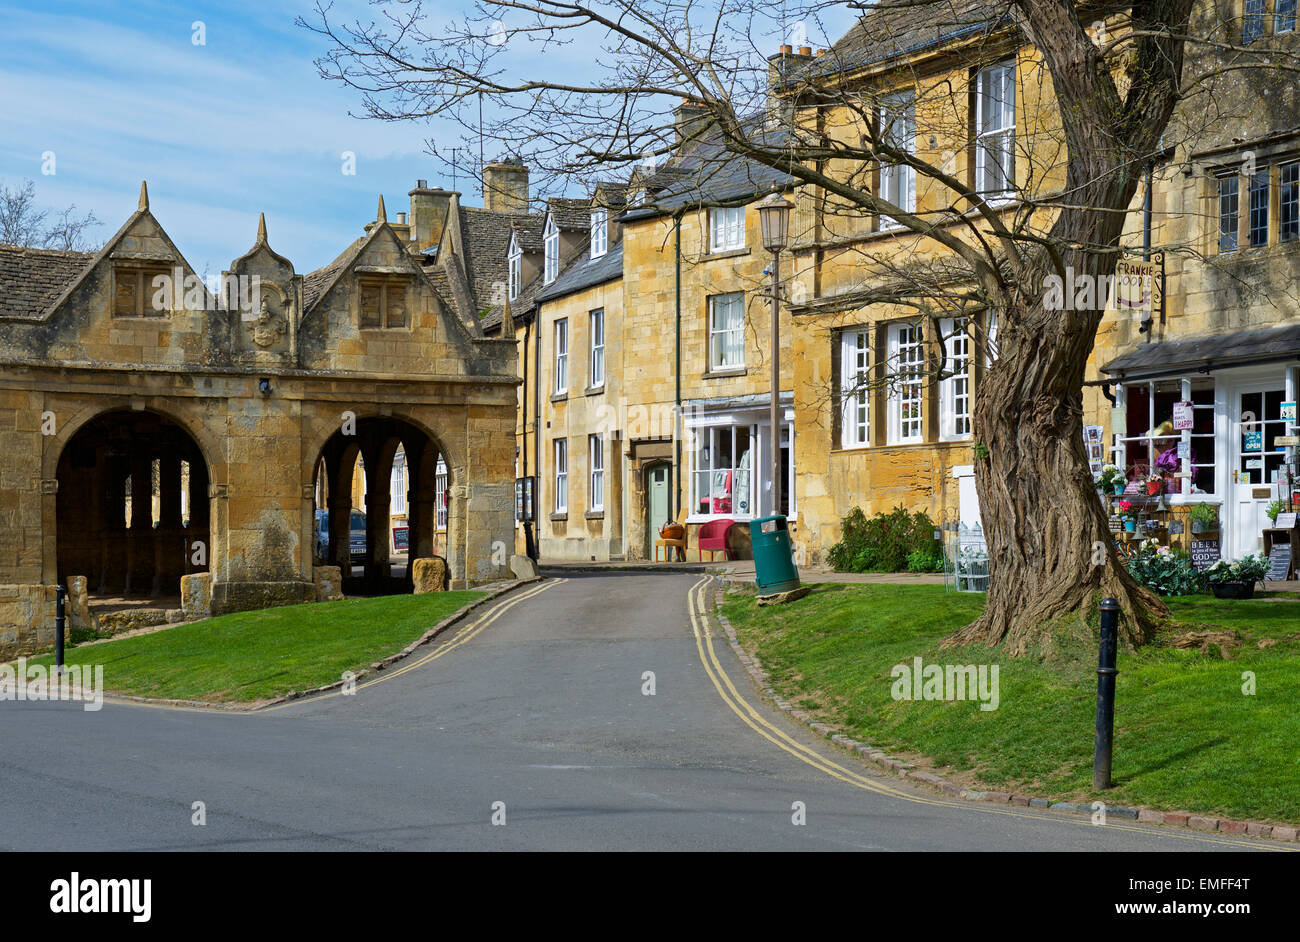 The cloisters in Chipping Campden, Gloucestershire, Cotswolds, England UK - Stock Image